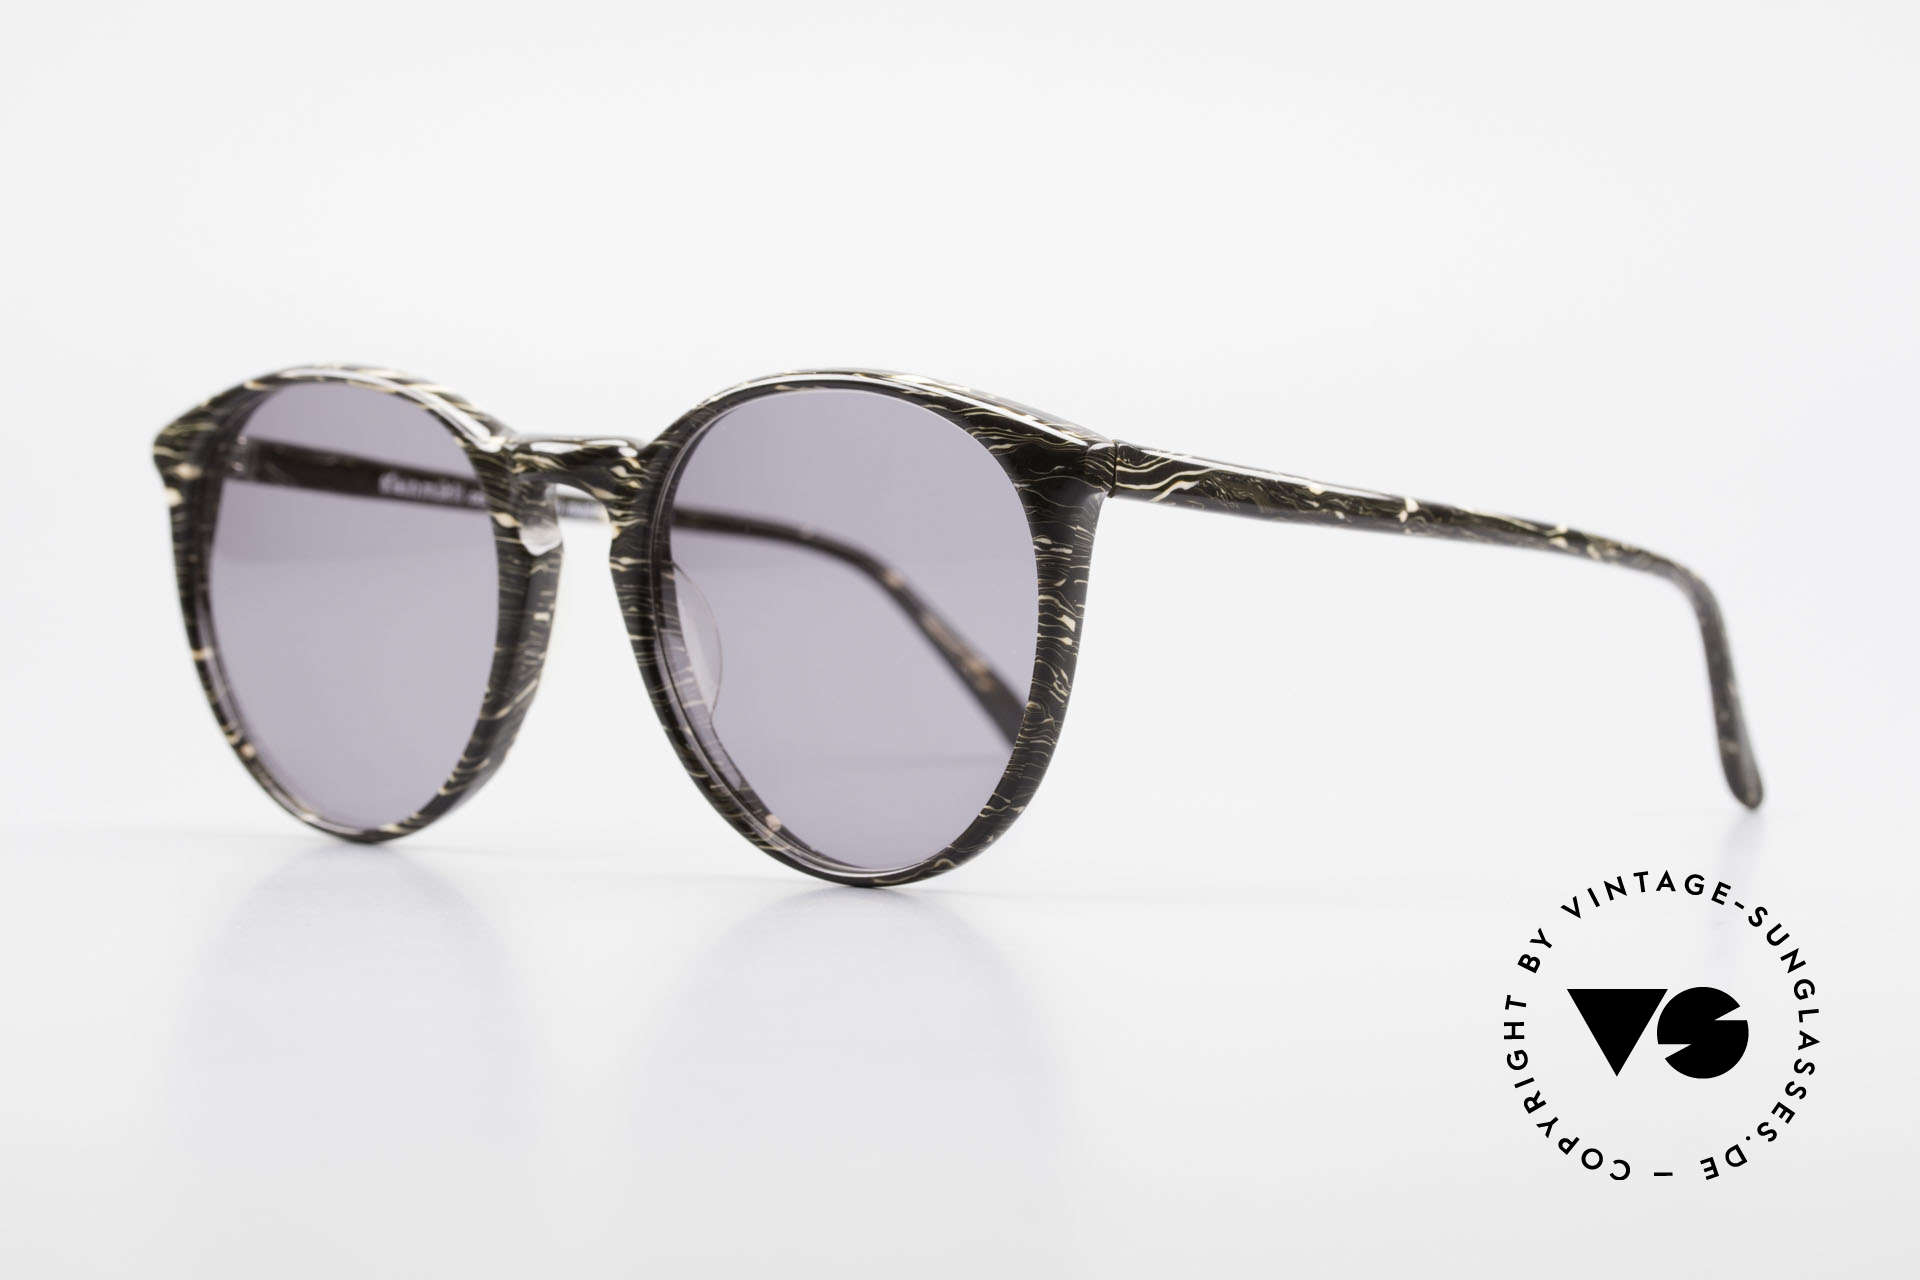 Alain Mikli 901 / 429 Brown Marbled Panto Frame, interesting frame pattern: brown / gray marbled, Made for Men and Women